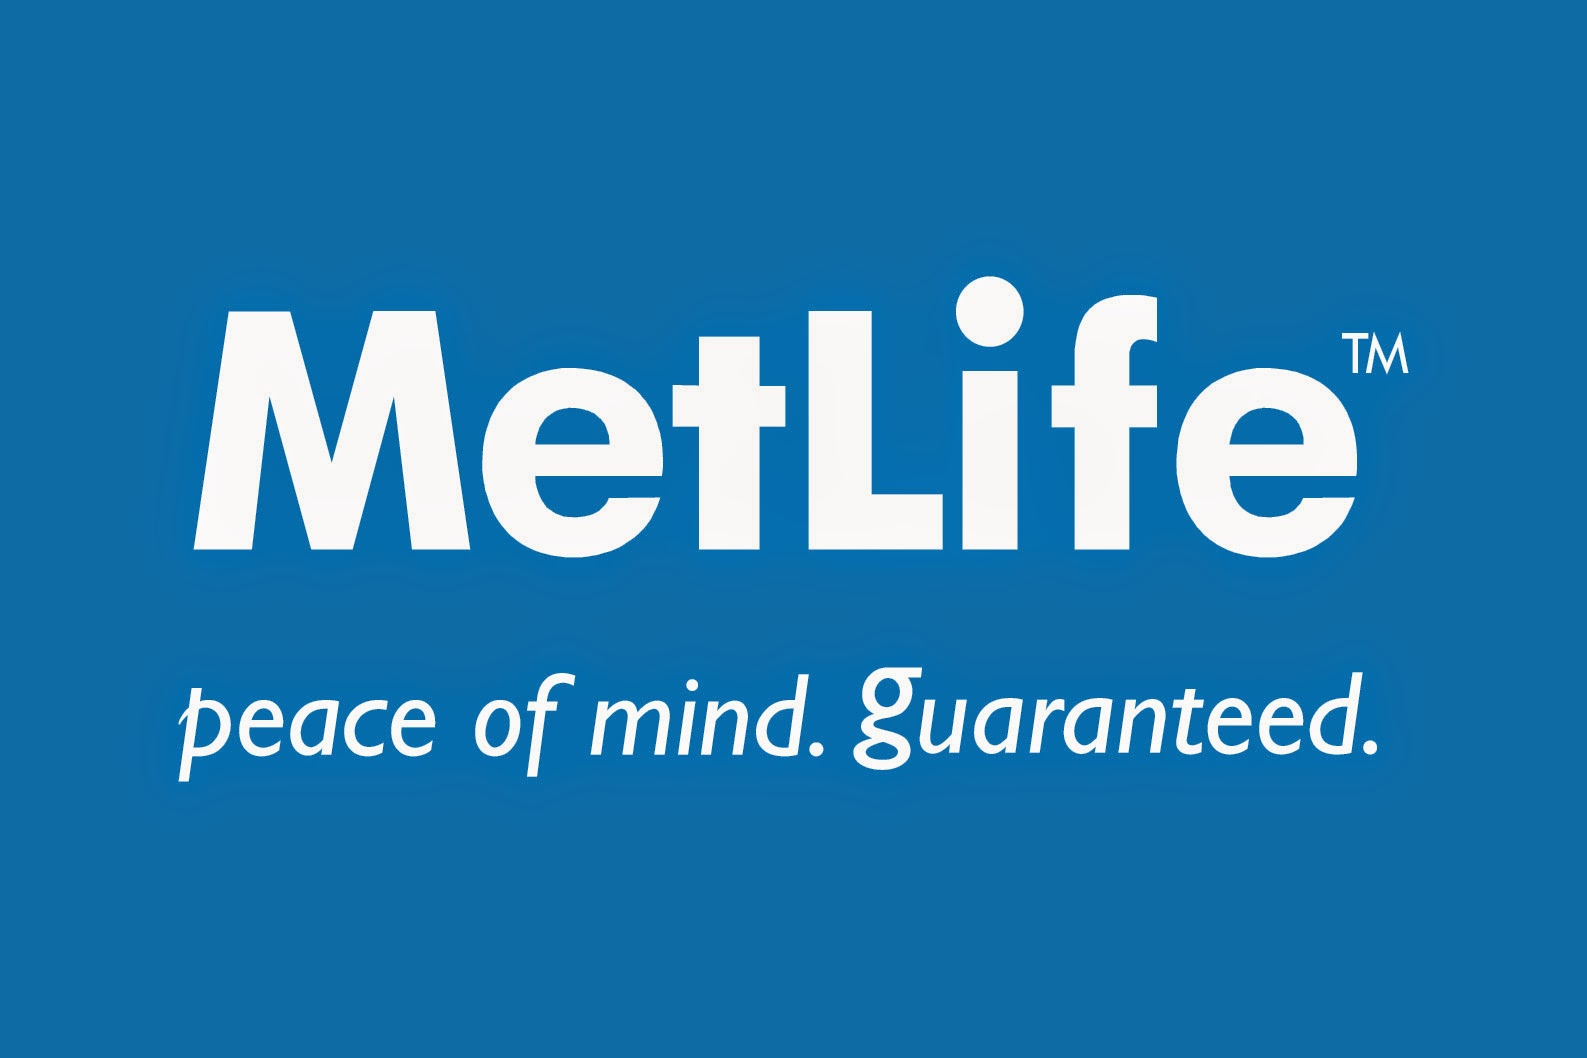 Metlife Whole Life Insurance Quotes 5 Best Life Insurance Companies In The Usa In 2014  Travel